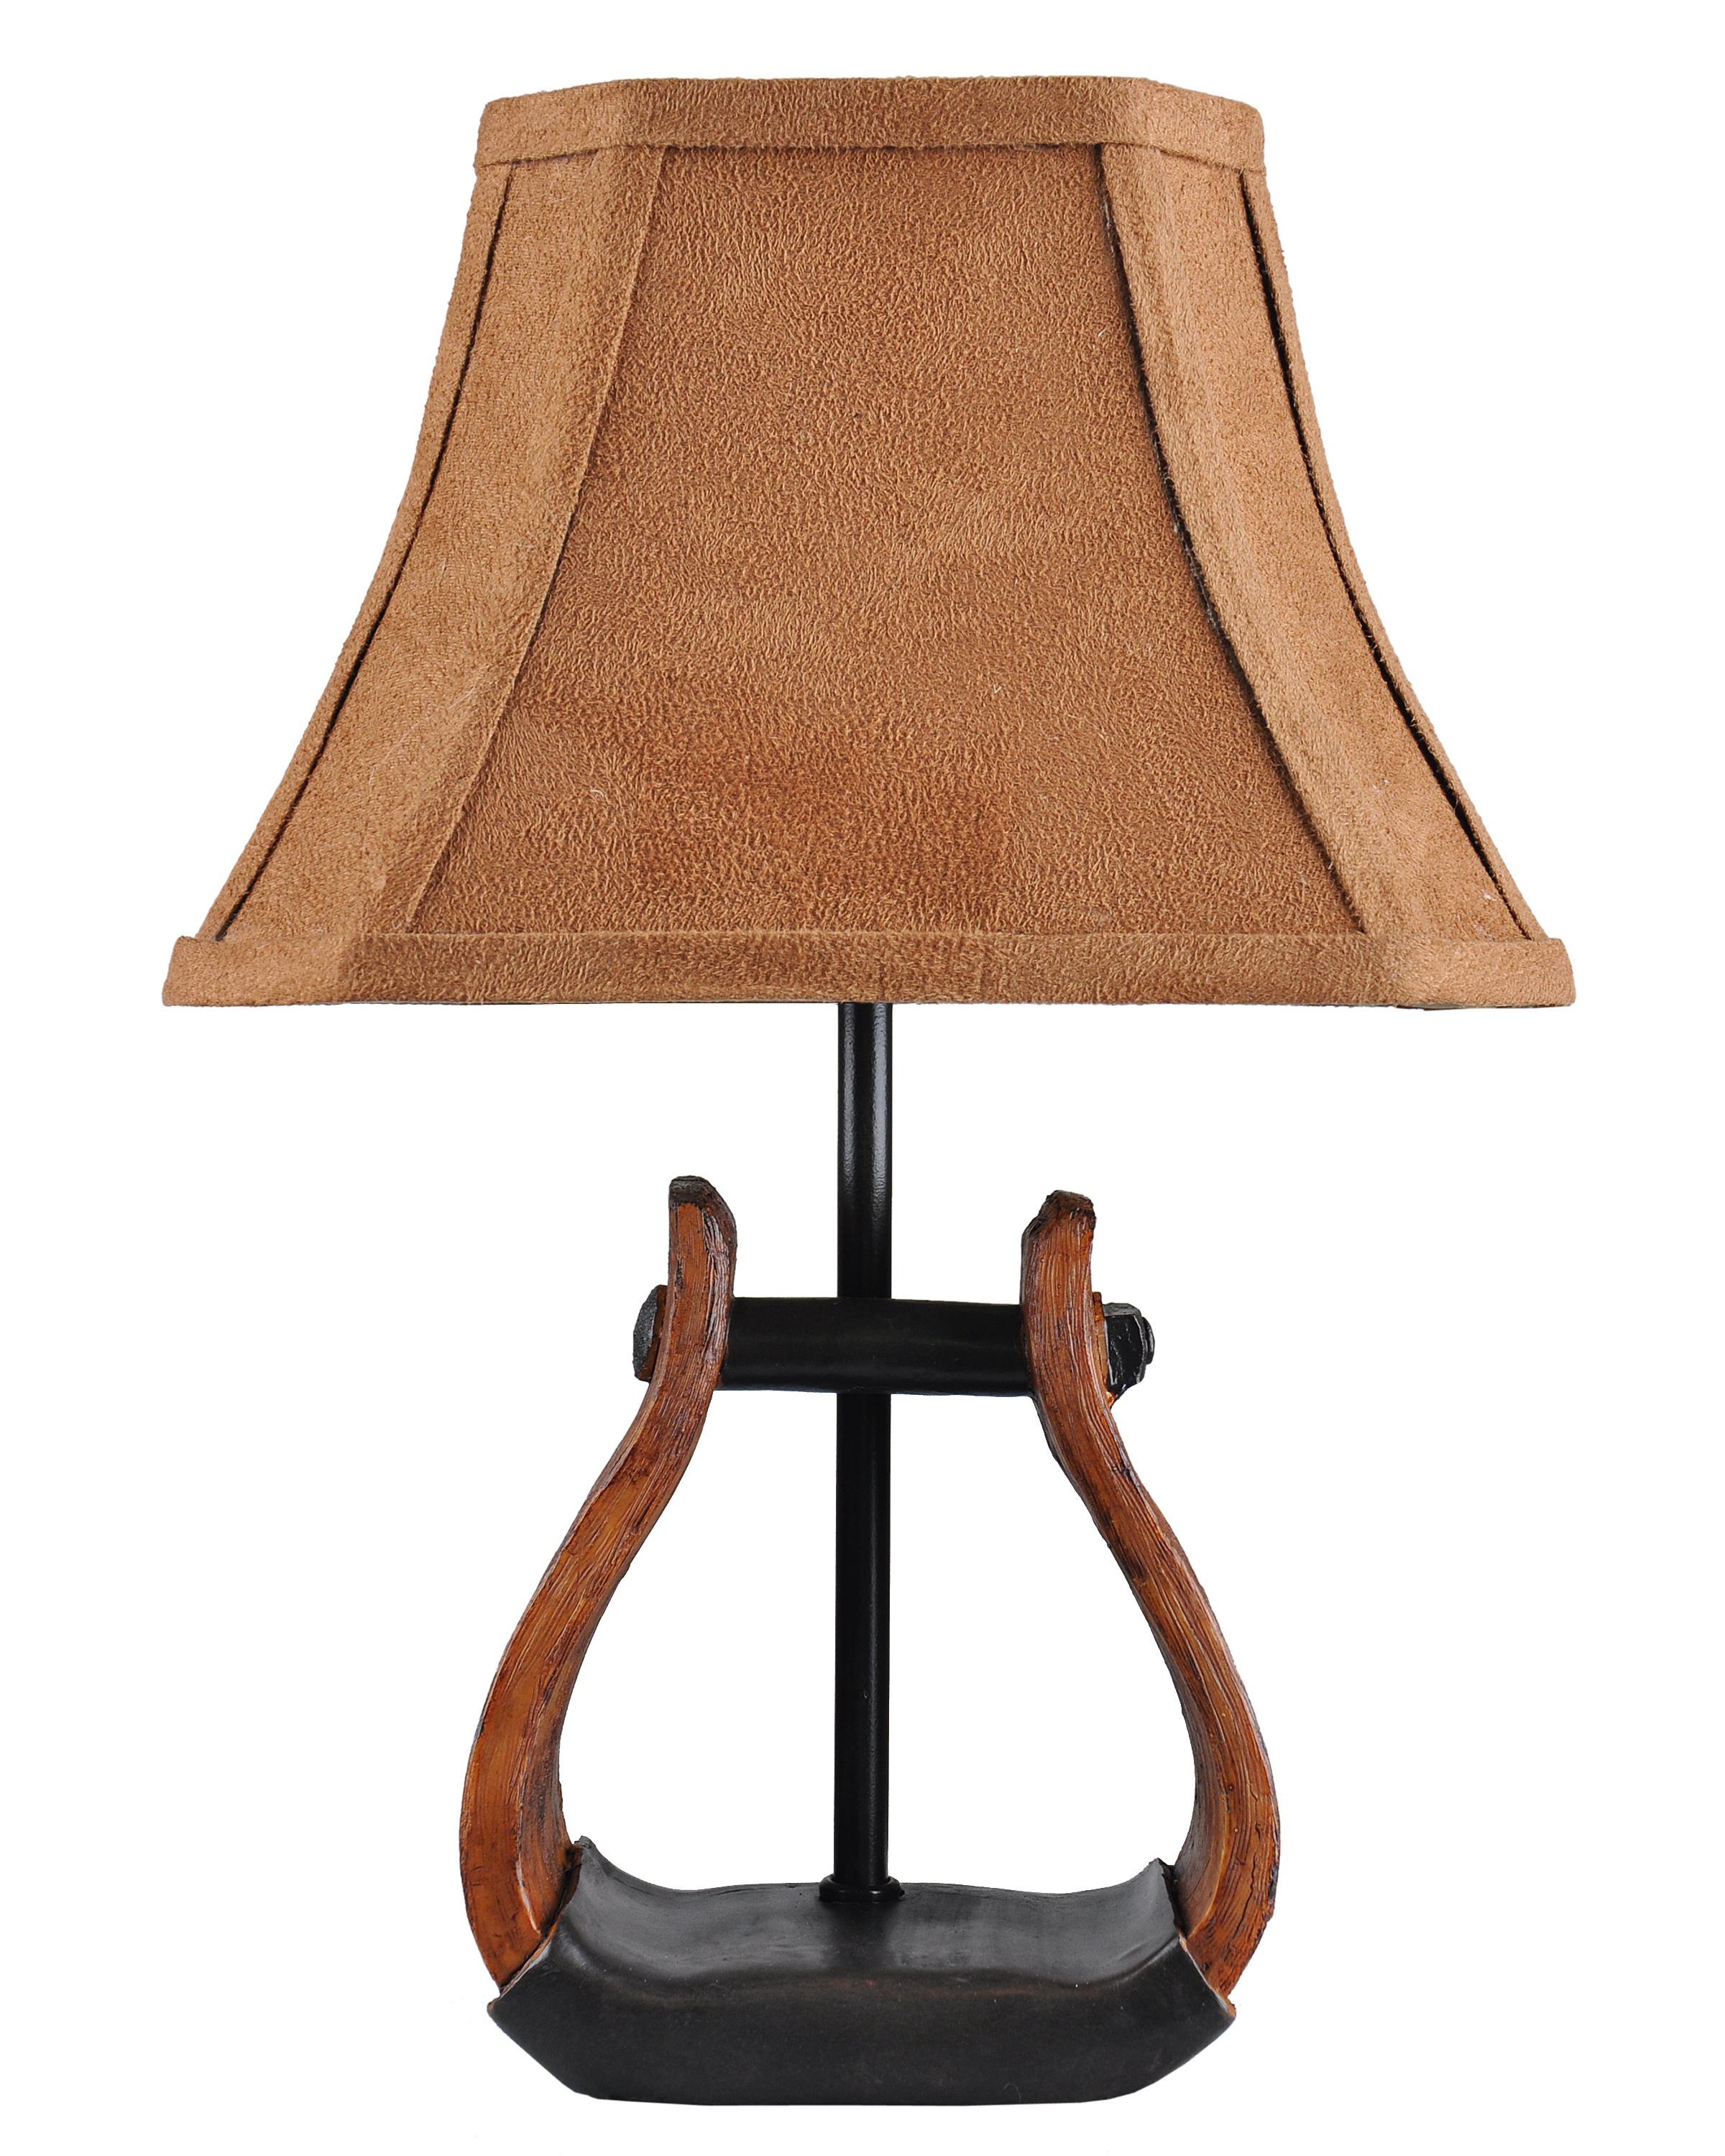 of lcn lamp distressed lamps wood incredible lis accessories fleur and fleurdelis popular nsyd u styles silver de antique trend decor table stunning pic ideas